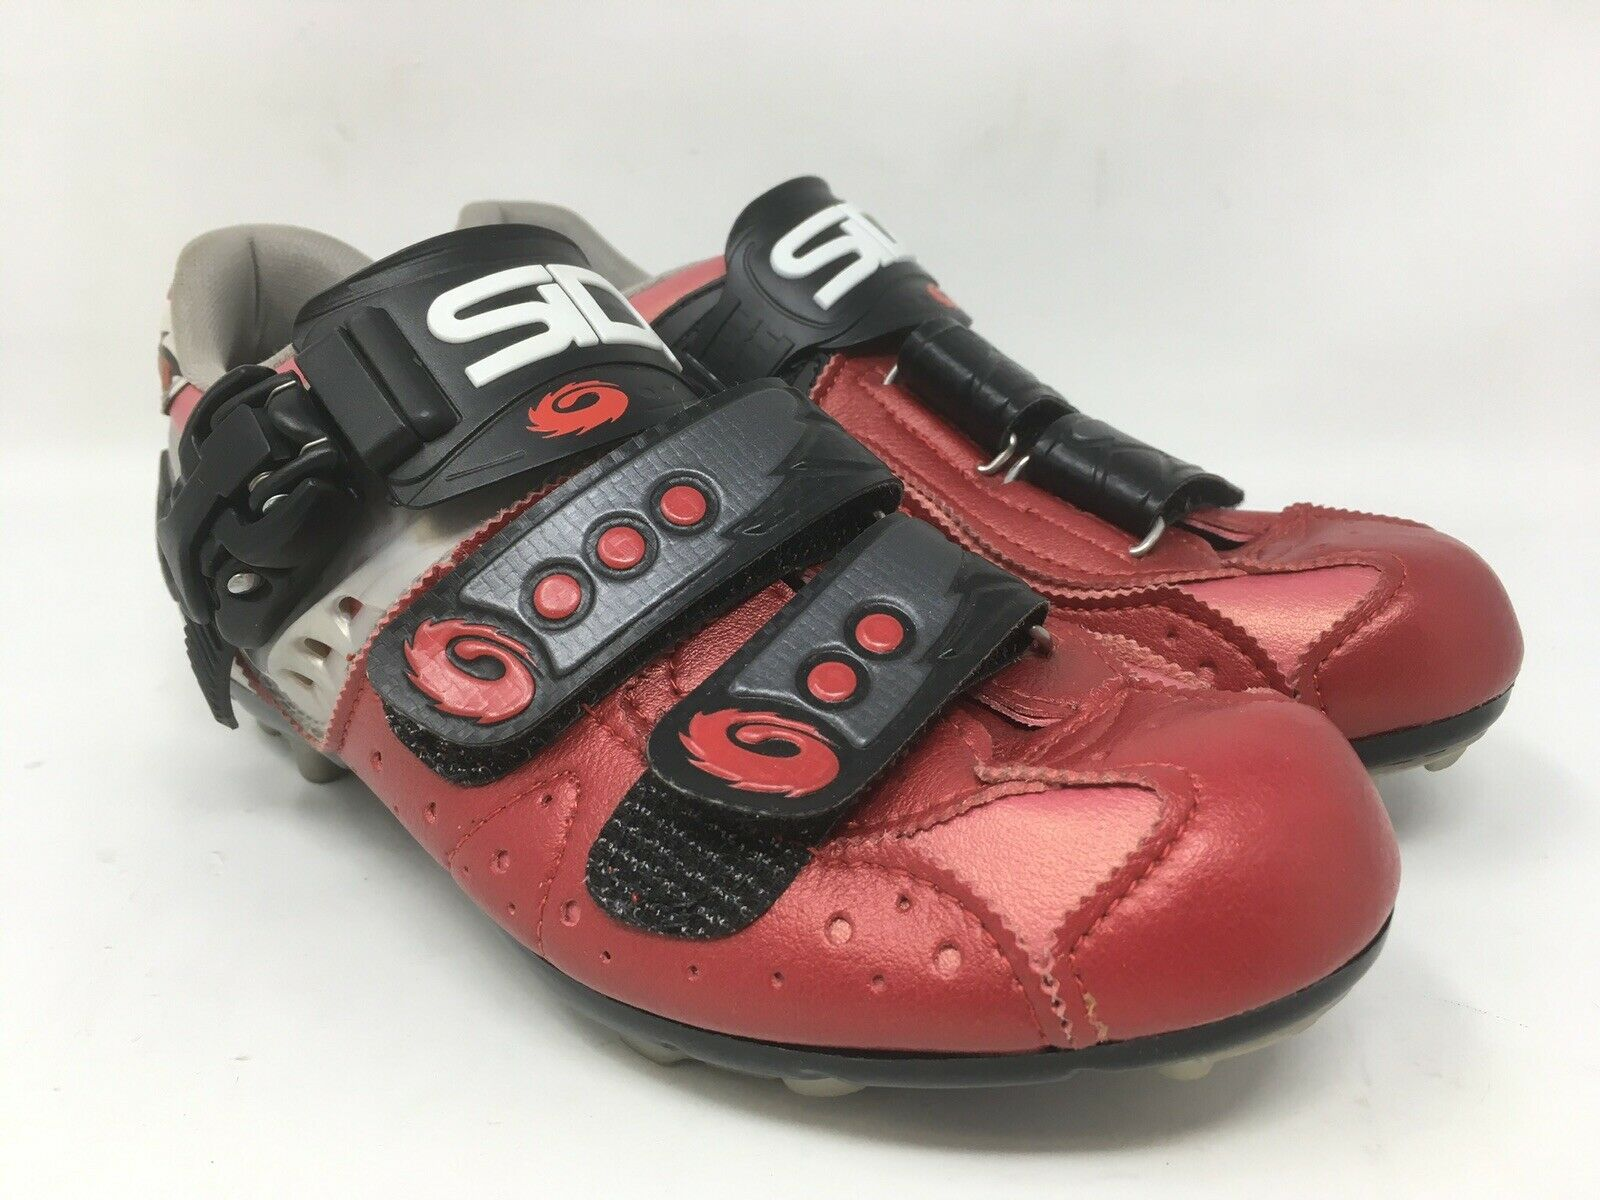 SIDI Dominator 5  MTB Lady Women's Mountain shoes US 5.5 pink NEW MSRP  260  latest styles